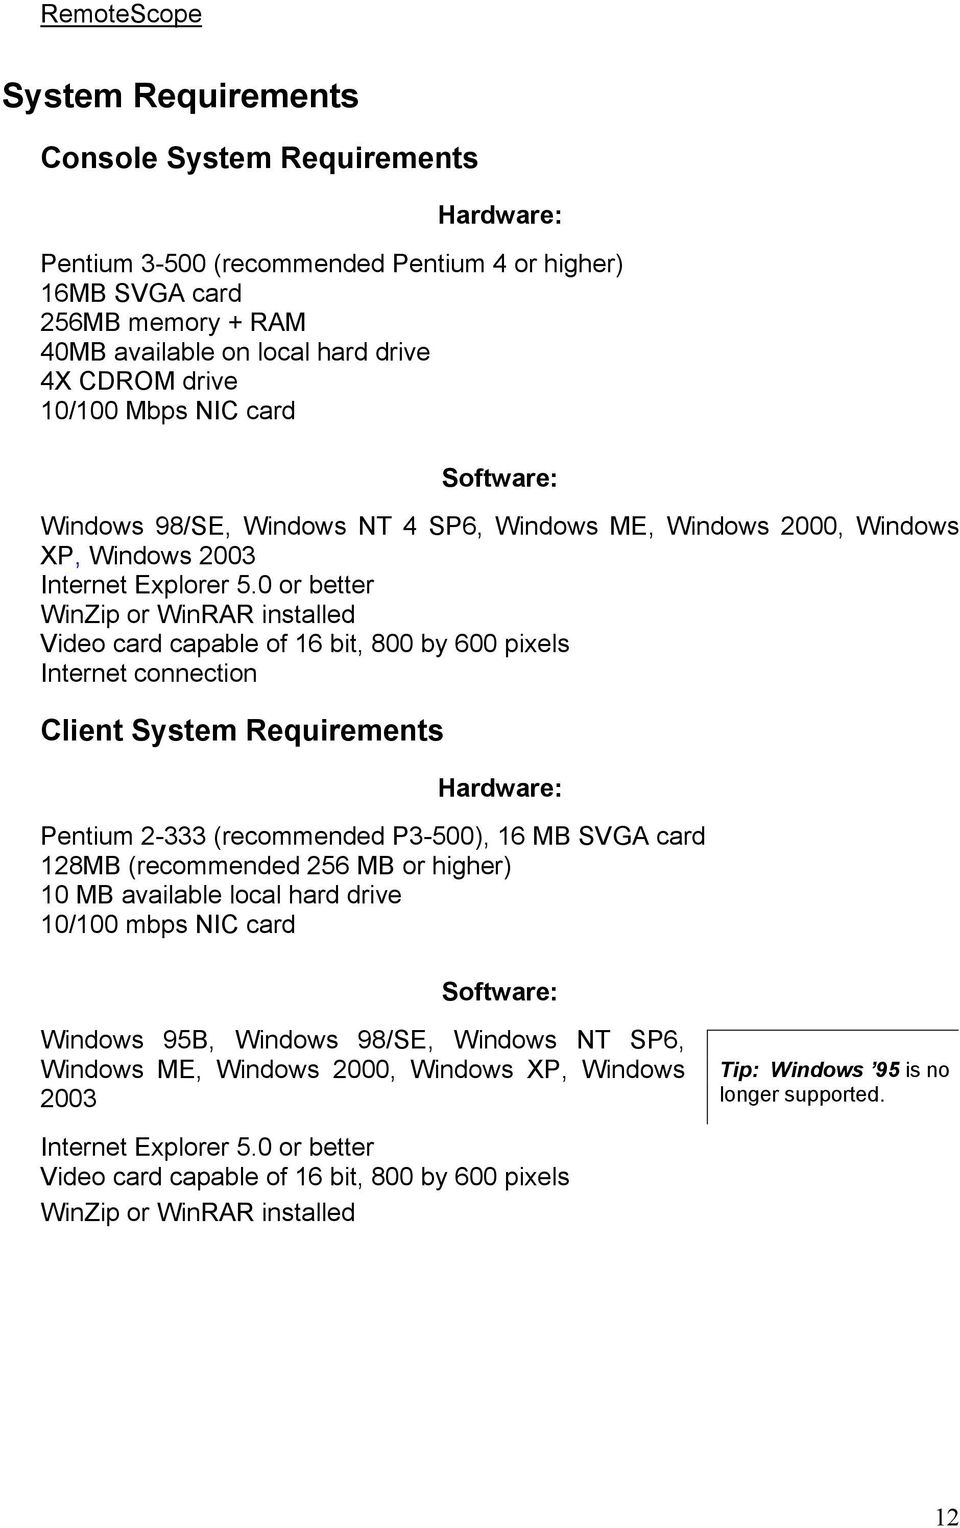 0 or better WinZip or WinRAR installed Video card capable of 16 bit, 800 by 600 pixels Internet connection Client System Requirements Hardware: Pentium 2-333 (recommended P3-500), 16 MB SVGA card